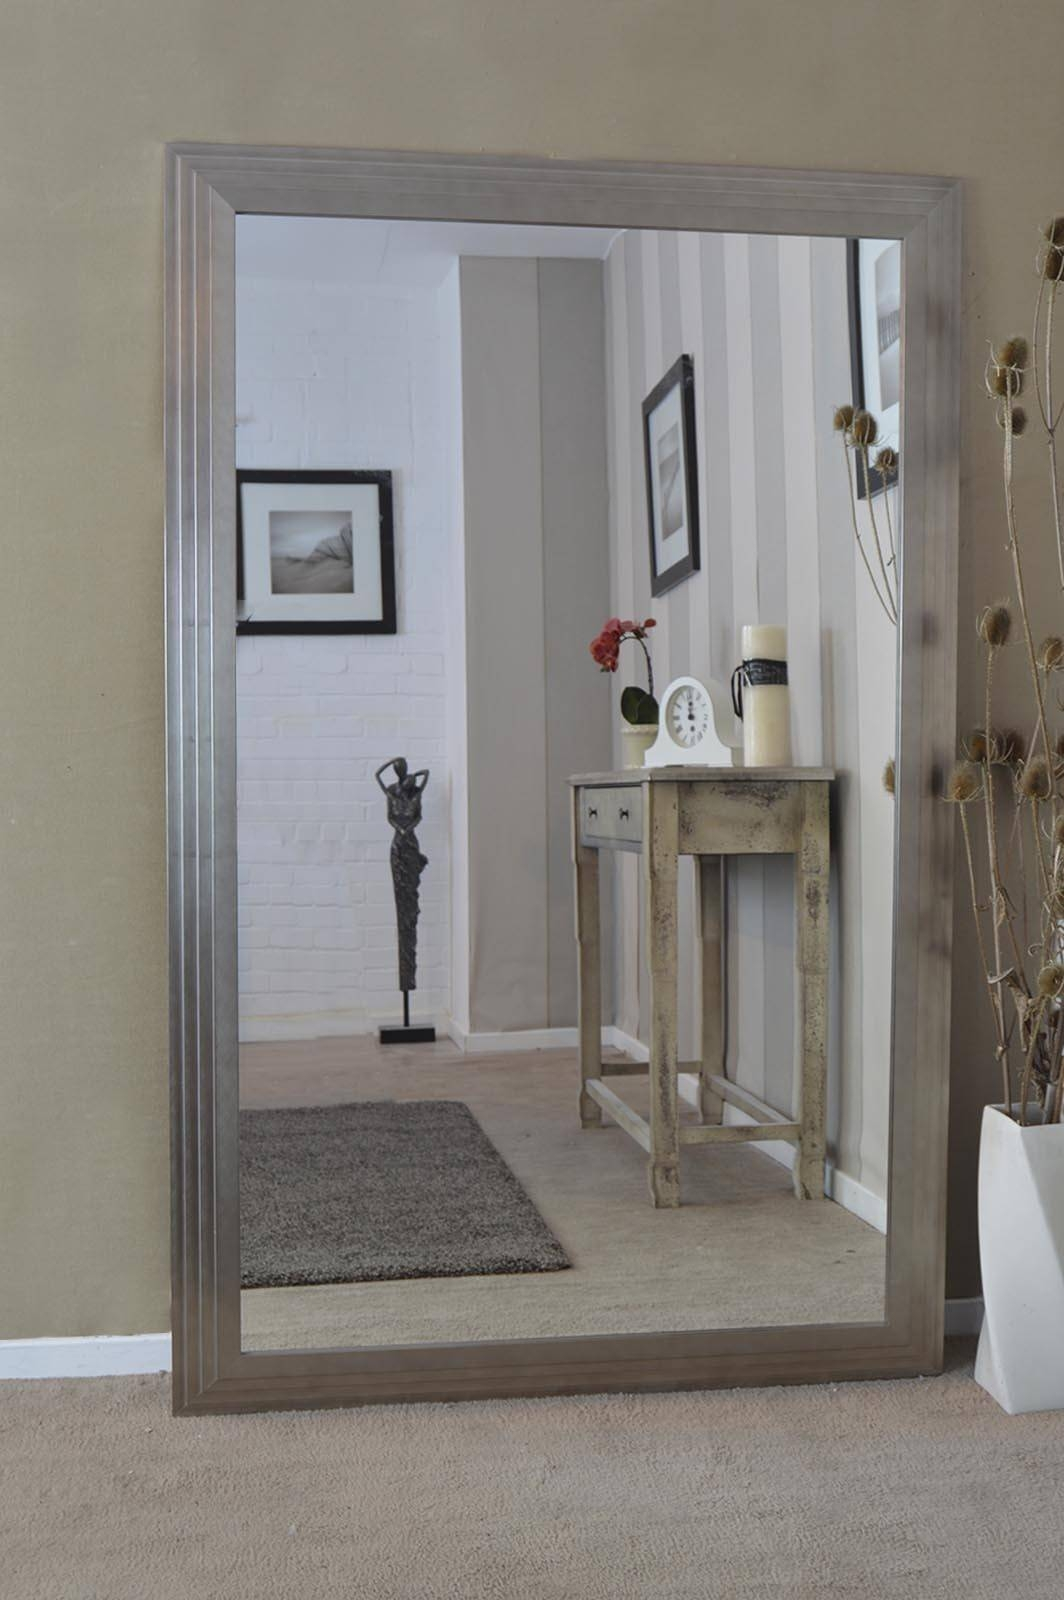 Wonderful Large Wall Mirrors For Hallway Pictures Inspiration regarding Long Mirrors for Hallway (Image 15 of 15)